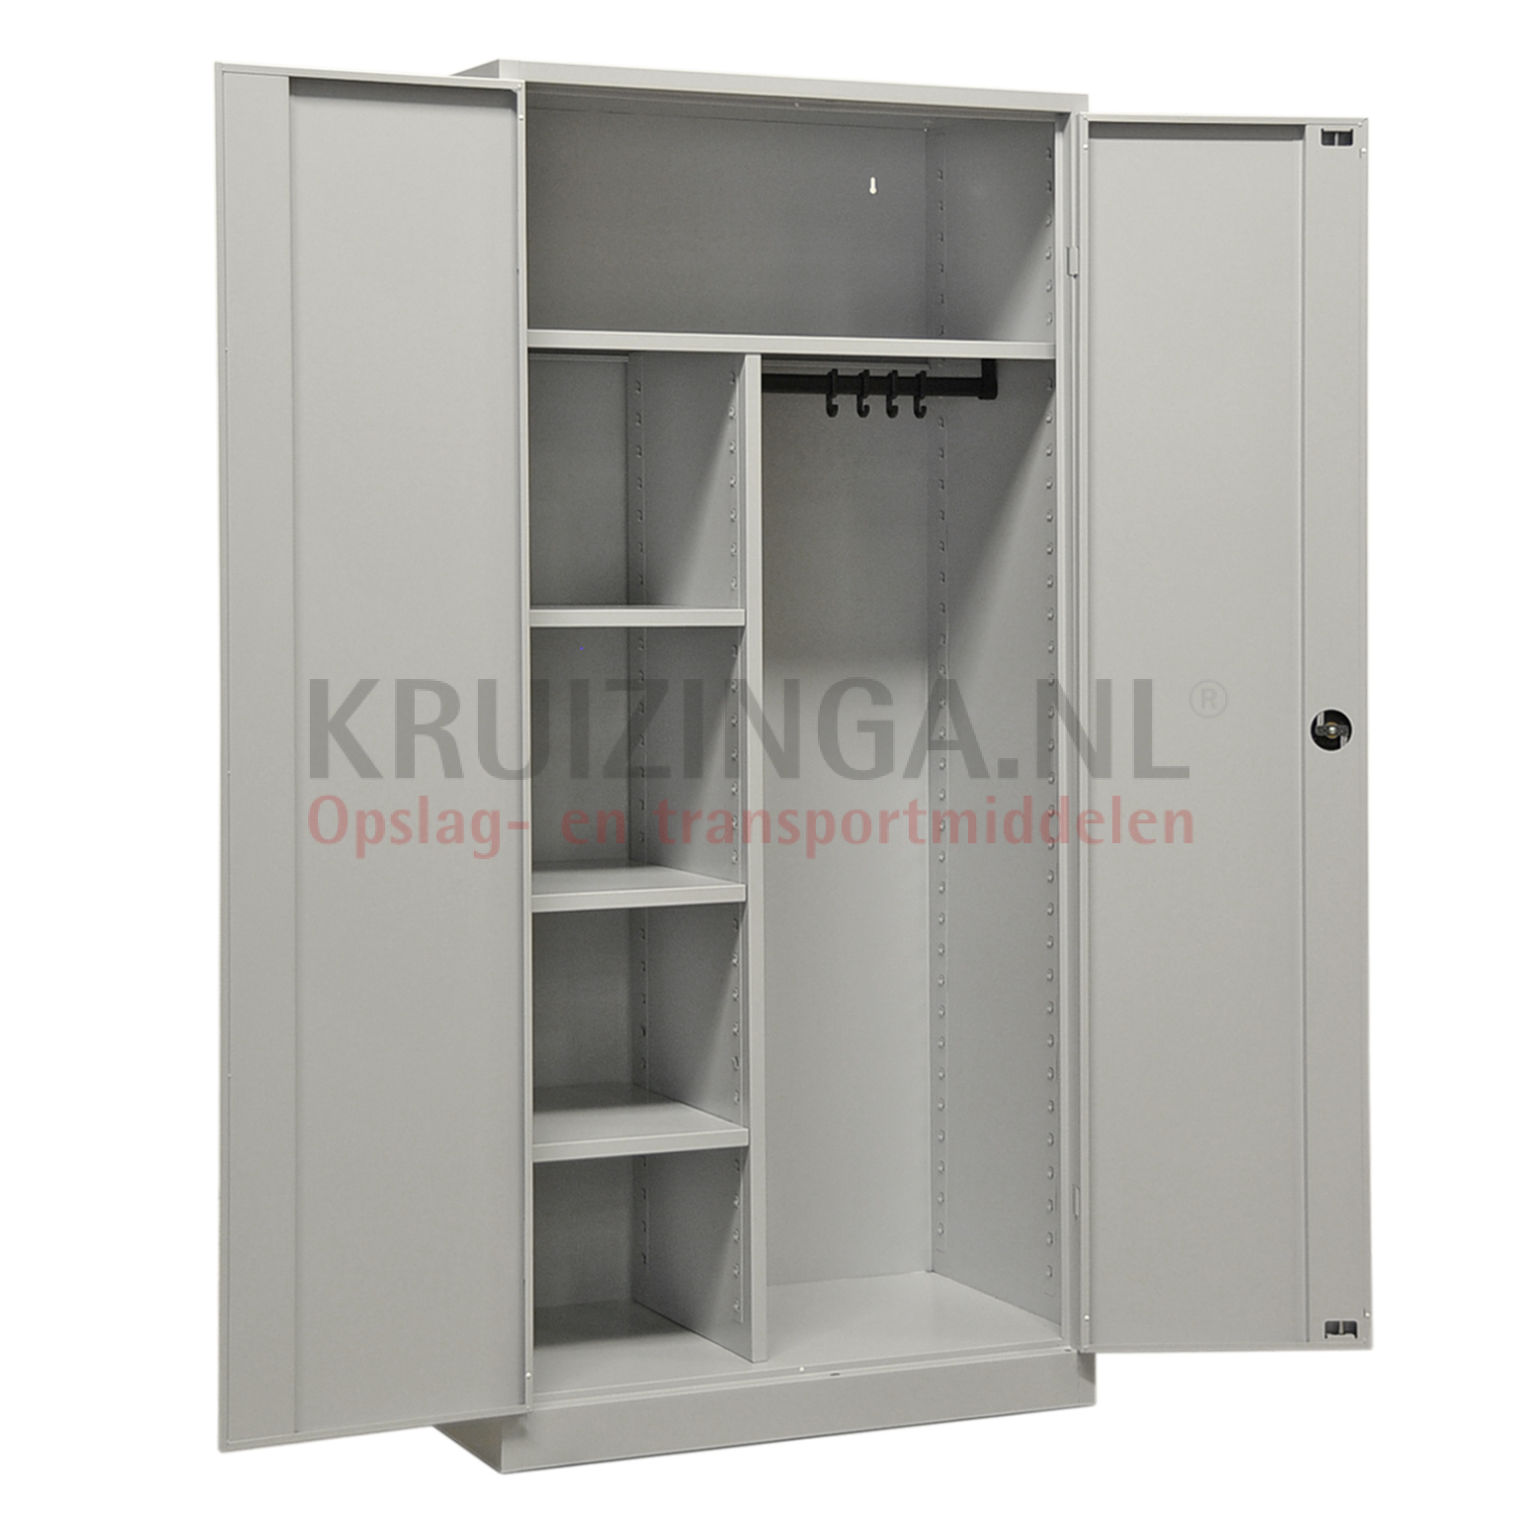 armoire armoire vestiaire 2 portes 431 50 frais de livraison inclus. Black Bedroom Furniture Sets. Home Design Ideas